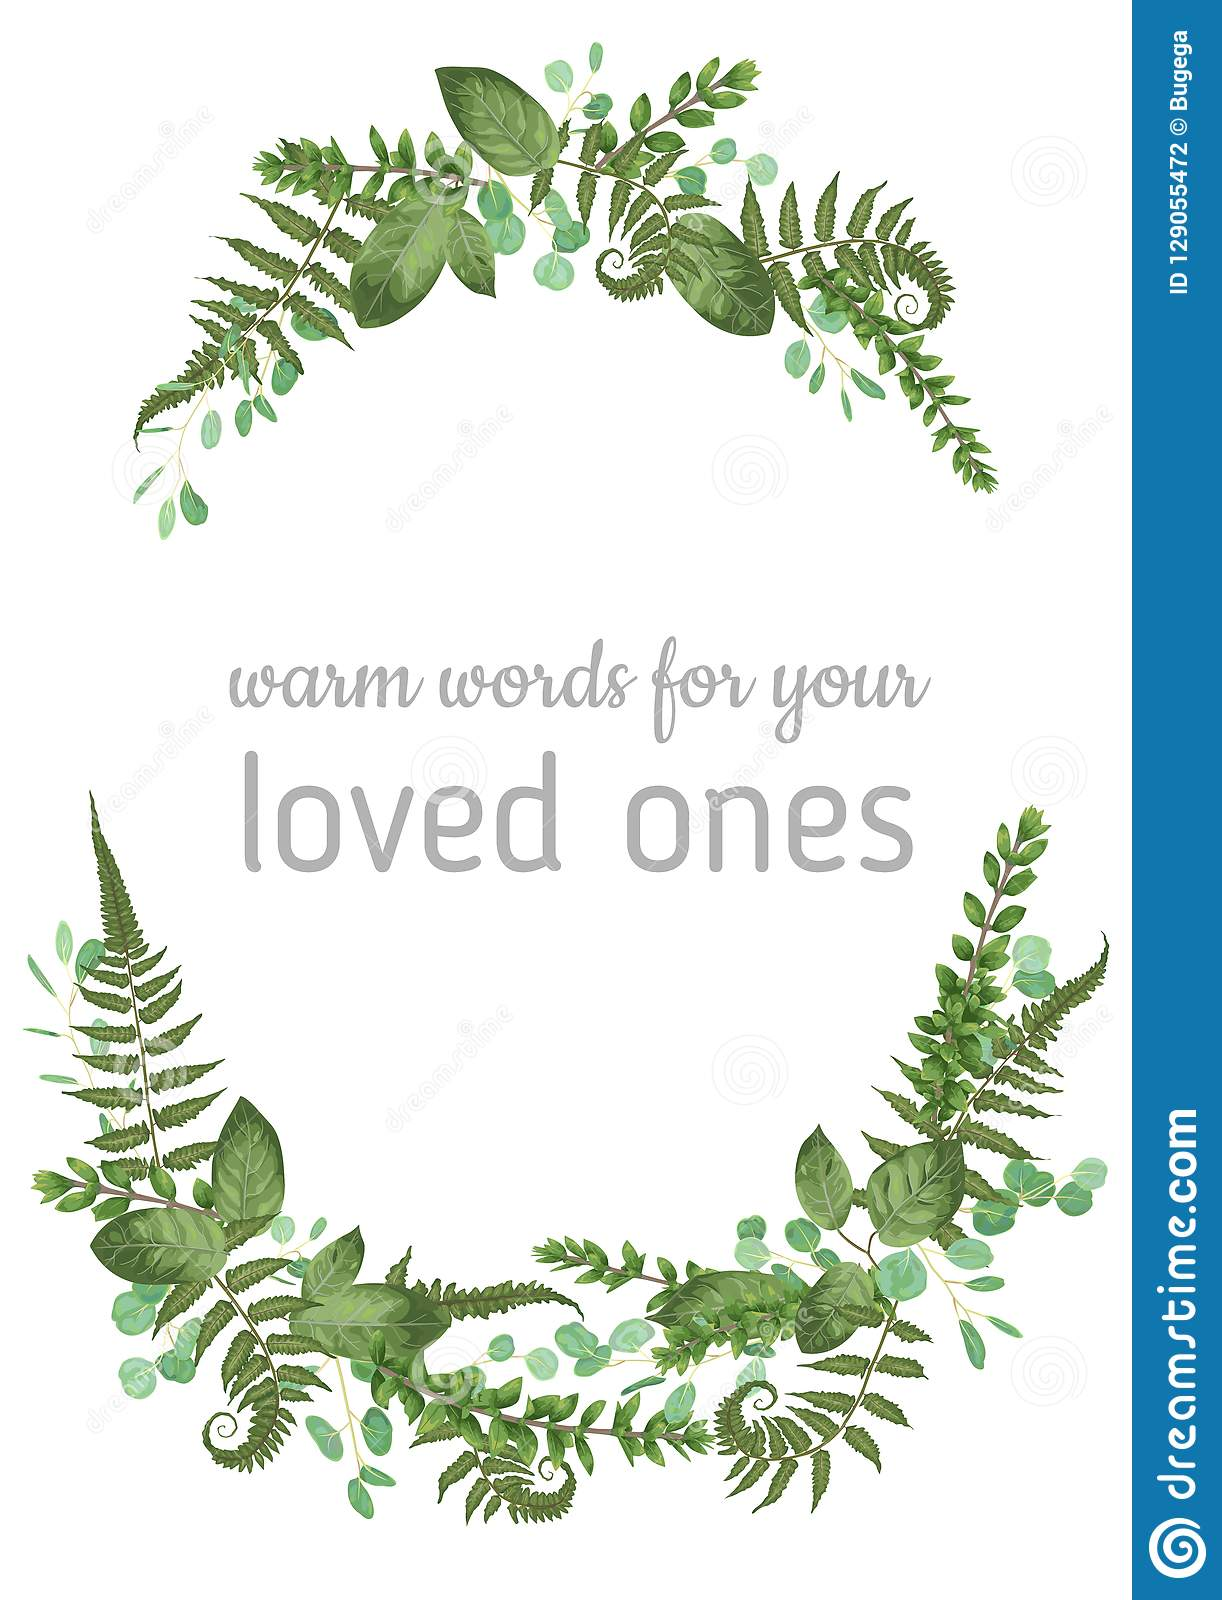 Floral vector background. Beautiful invitation with various leaves. Botanical illustration. Fern, eucalyptus, boxwood. Engraving